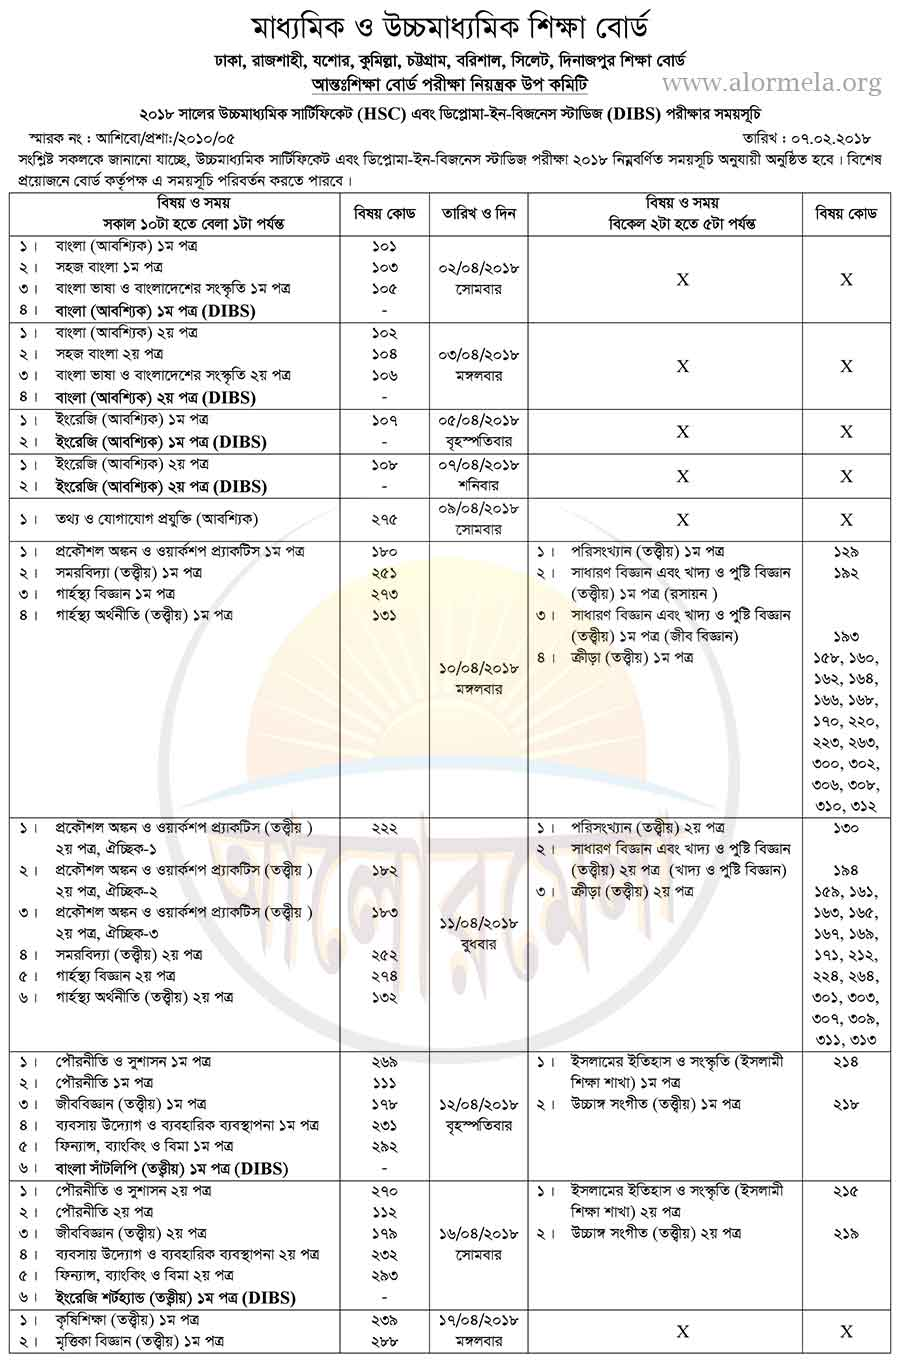 hsc and dibs exam routine 2018